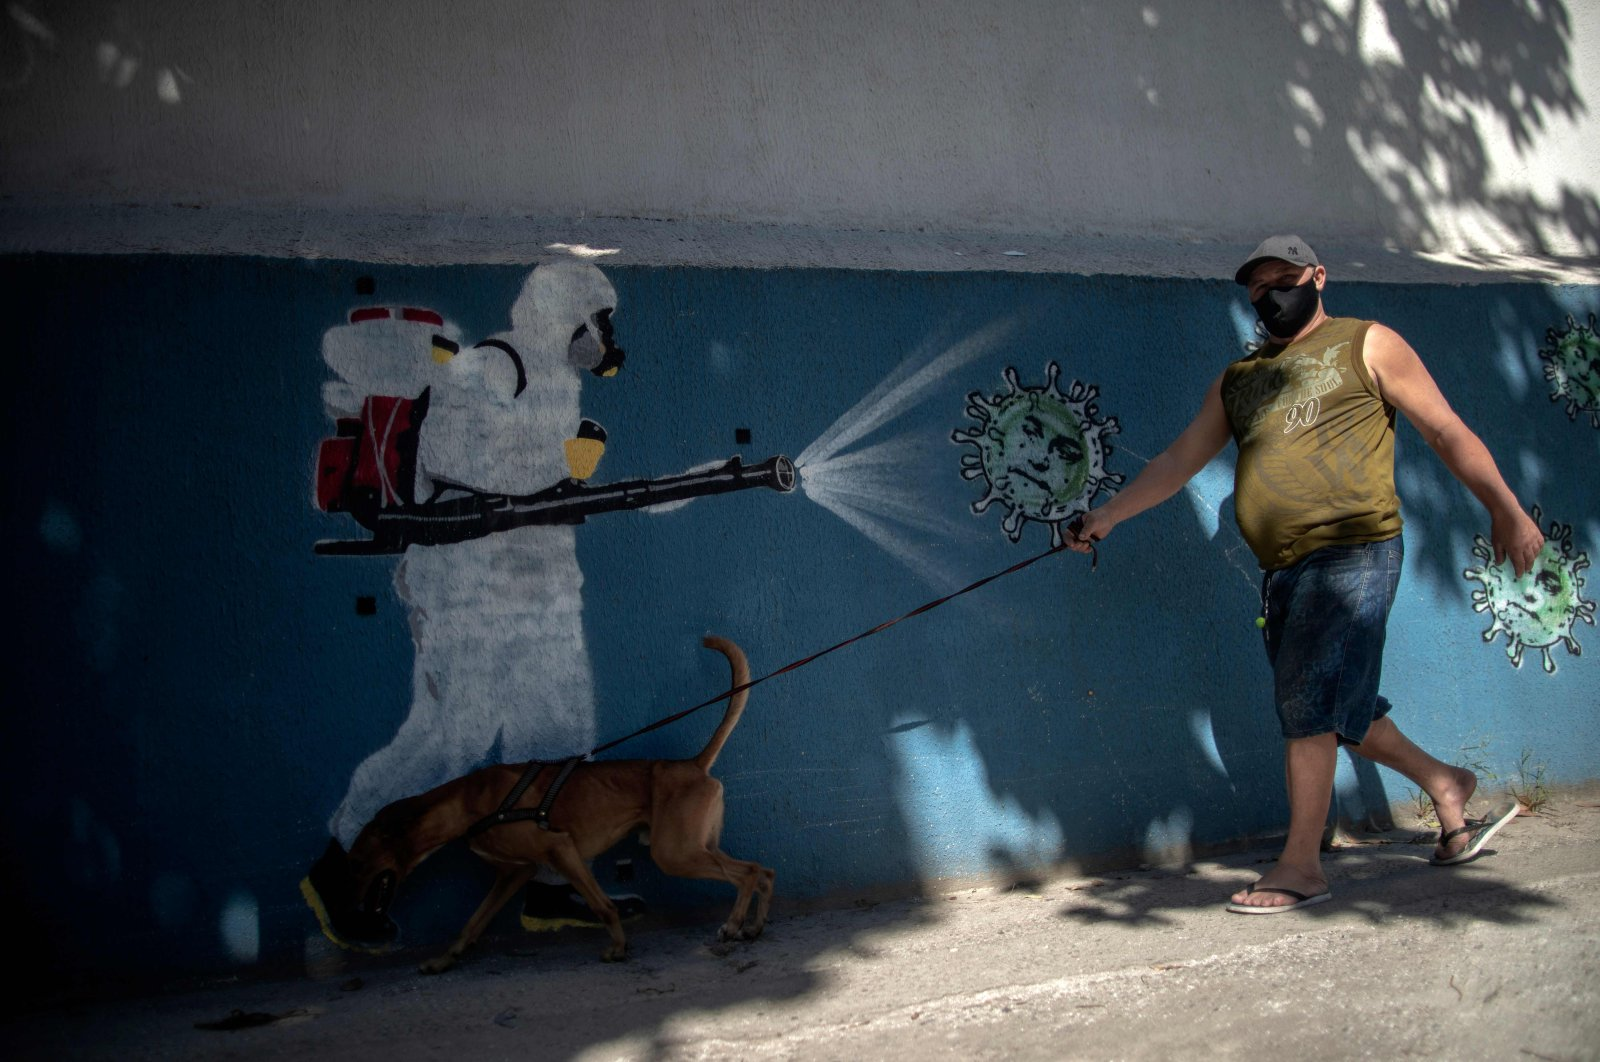 A man walks his dog in front of a mural depicting a man in protective suit spraying disinfectant on coronavirus, Rio de Janeiro, Brazil, July 8, 2020. (AFP Photo)